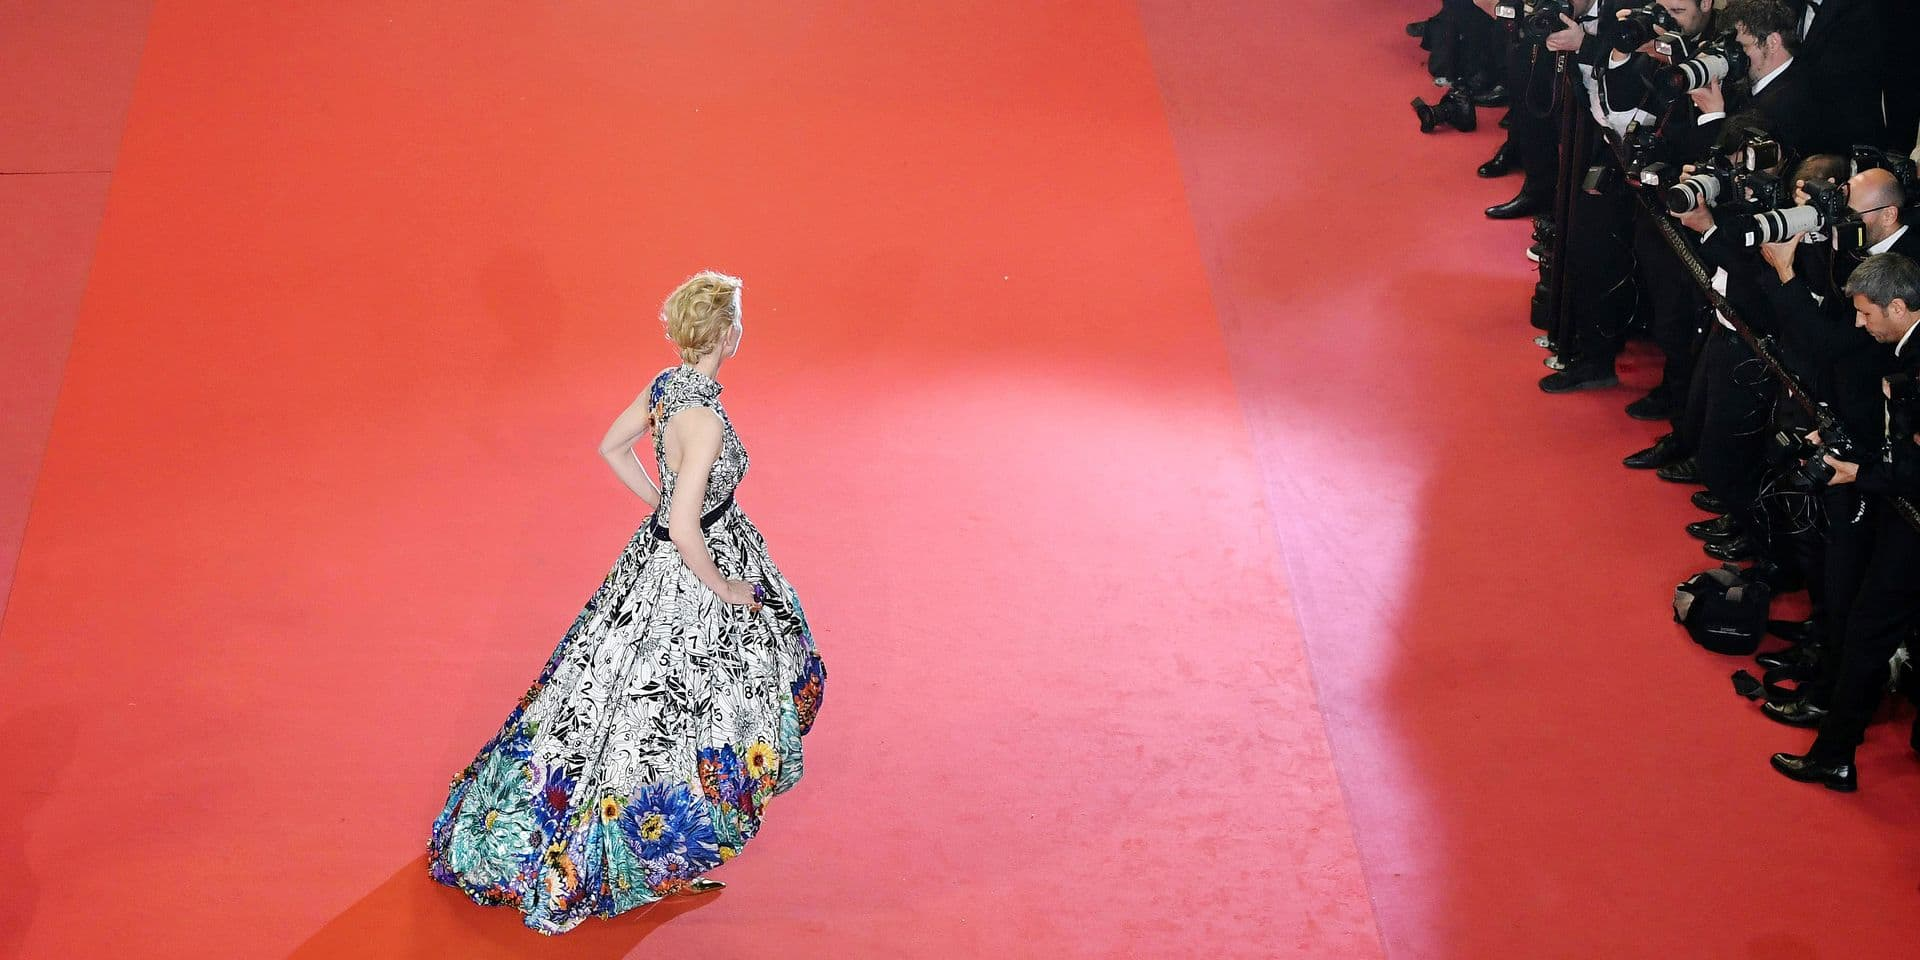 """Australian actress and President of the Jury Cate Blanchett poses as she arrives on May 10, 2018 for the screening of the film """"Cold War (Zimna Wojna)"""" at the 71st edition of the Cannes Film Festival in Cannes, southern France. / AFP PHOTO / Antonin THUILLIER"""